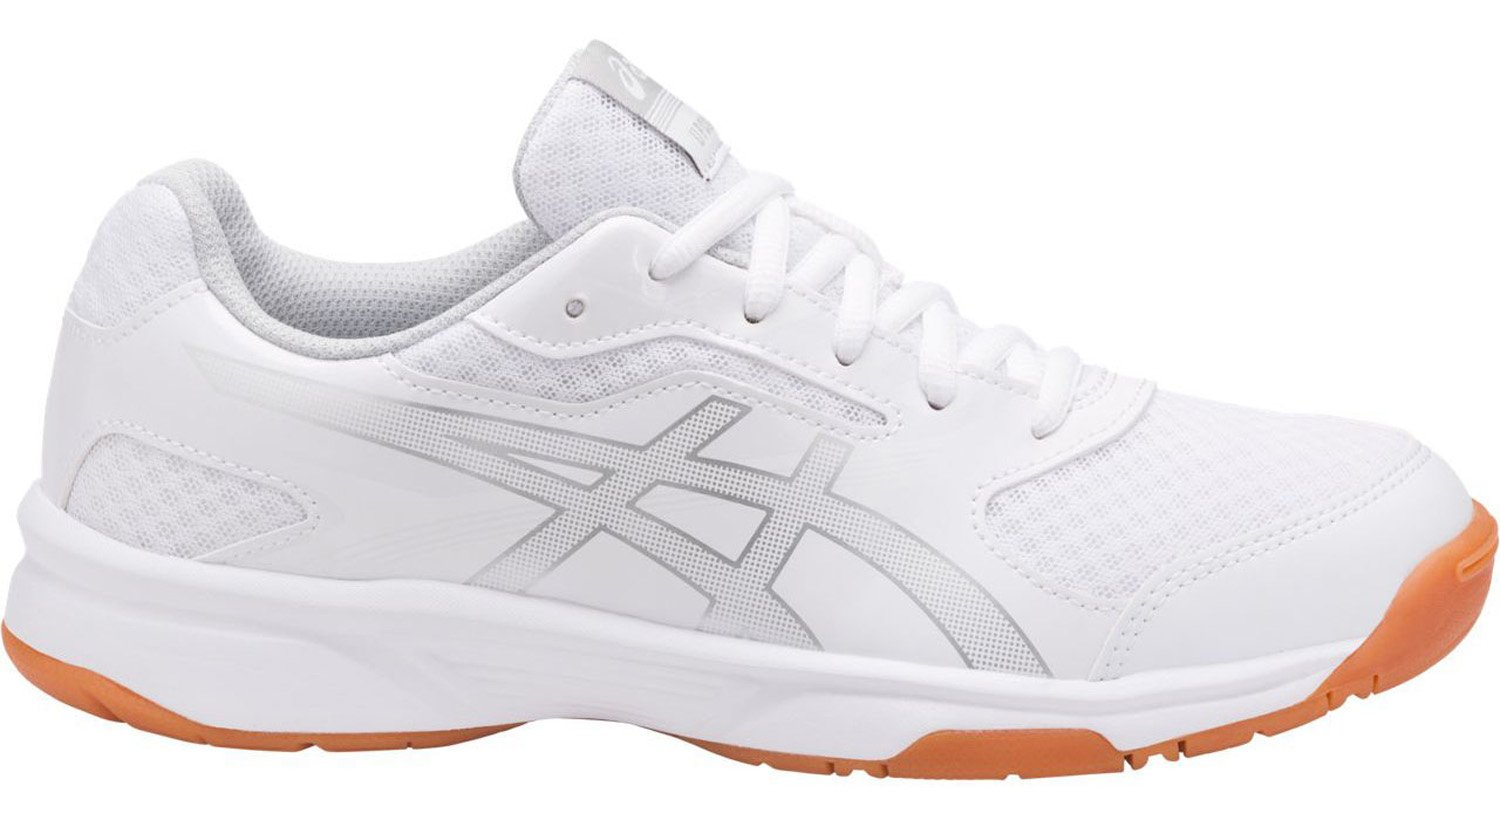 dc53f3d5a8b8a Galleon - ASICS Men's Gel-Upcourt 2 Volleyball Shoe - White/Silver, 10